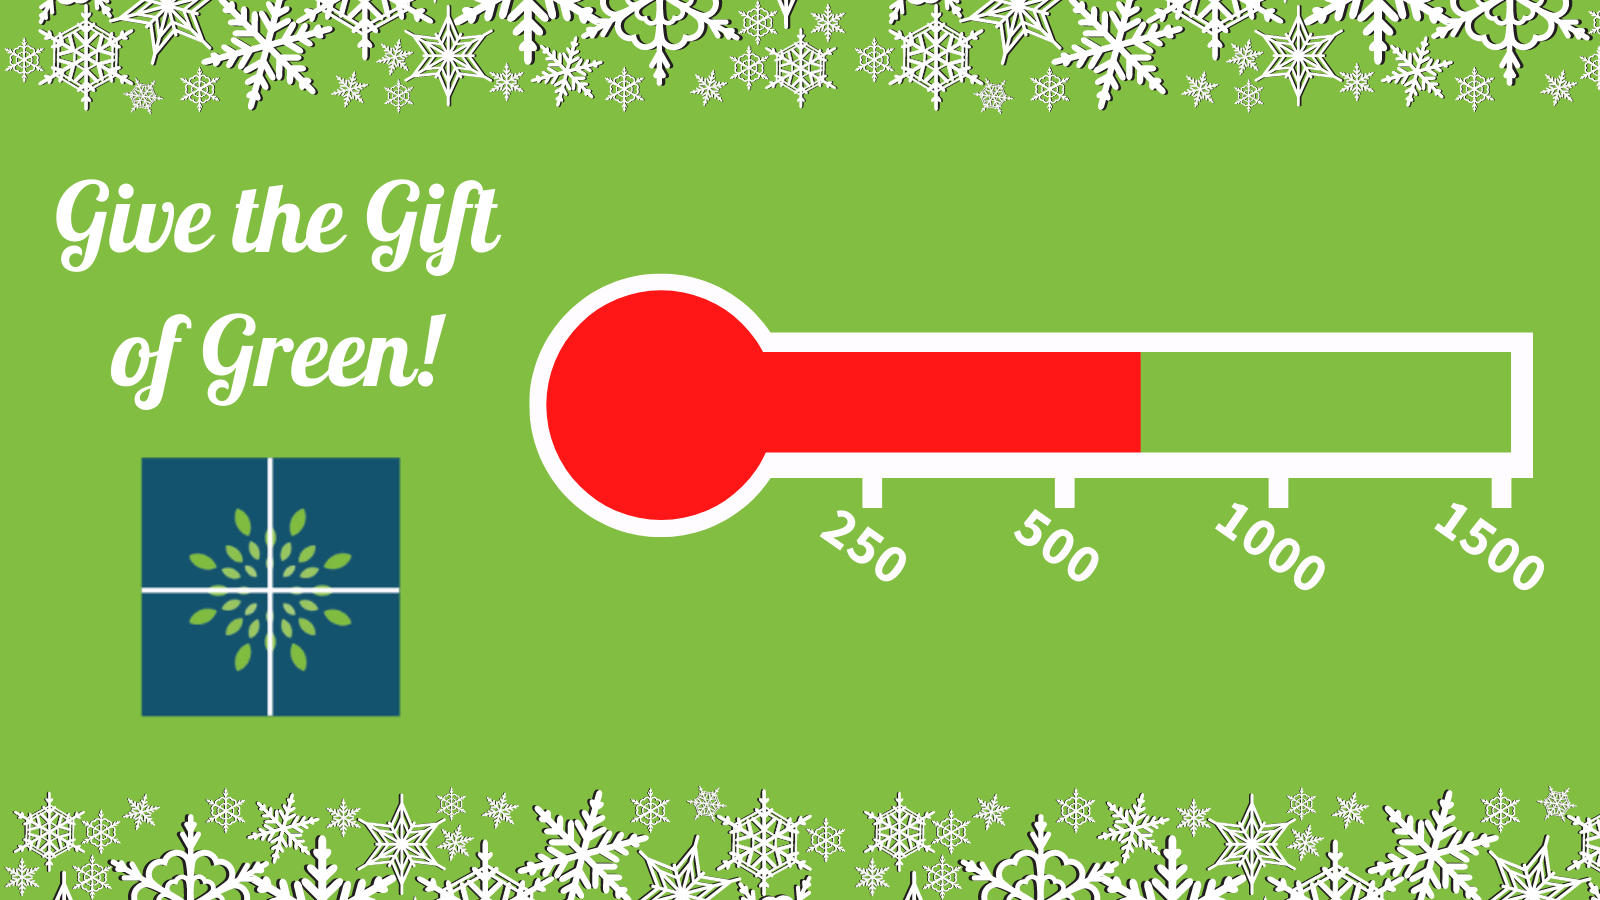 Graphic depicts progress to $1,500 goal. The red meter is filled up to the $725 mark.